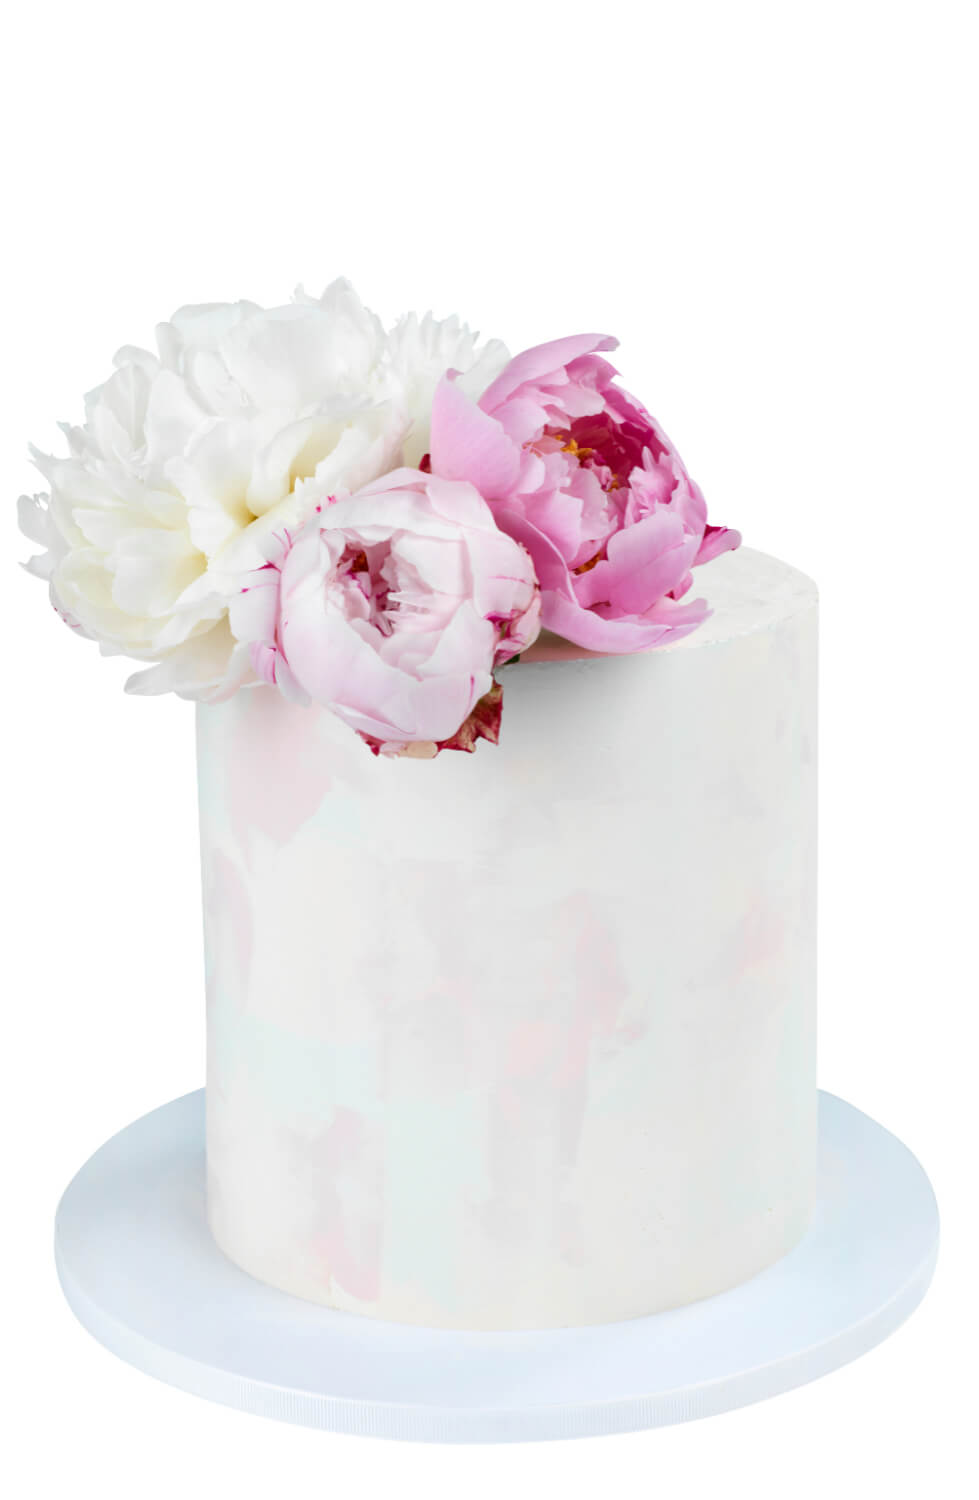 Cakes by Hancock - Pink Pastel Flowers